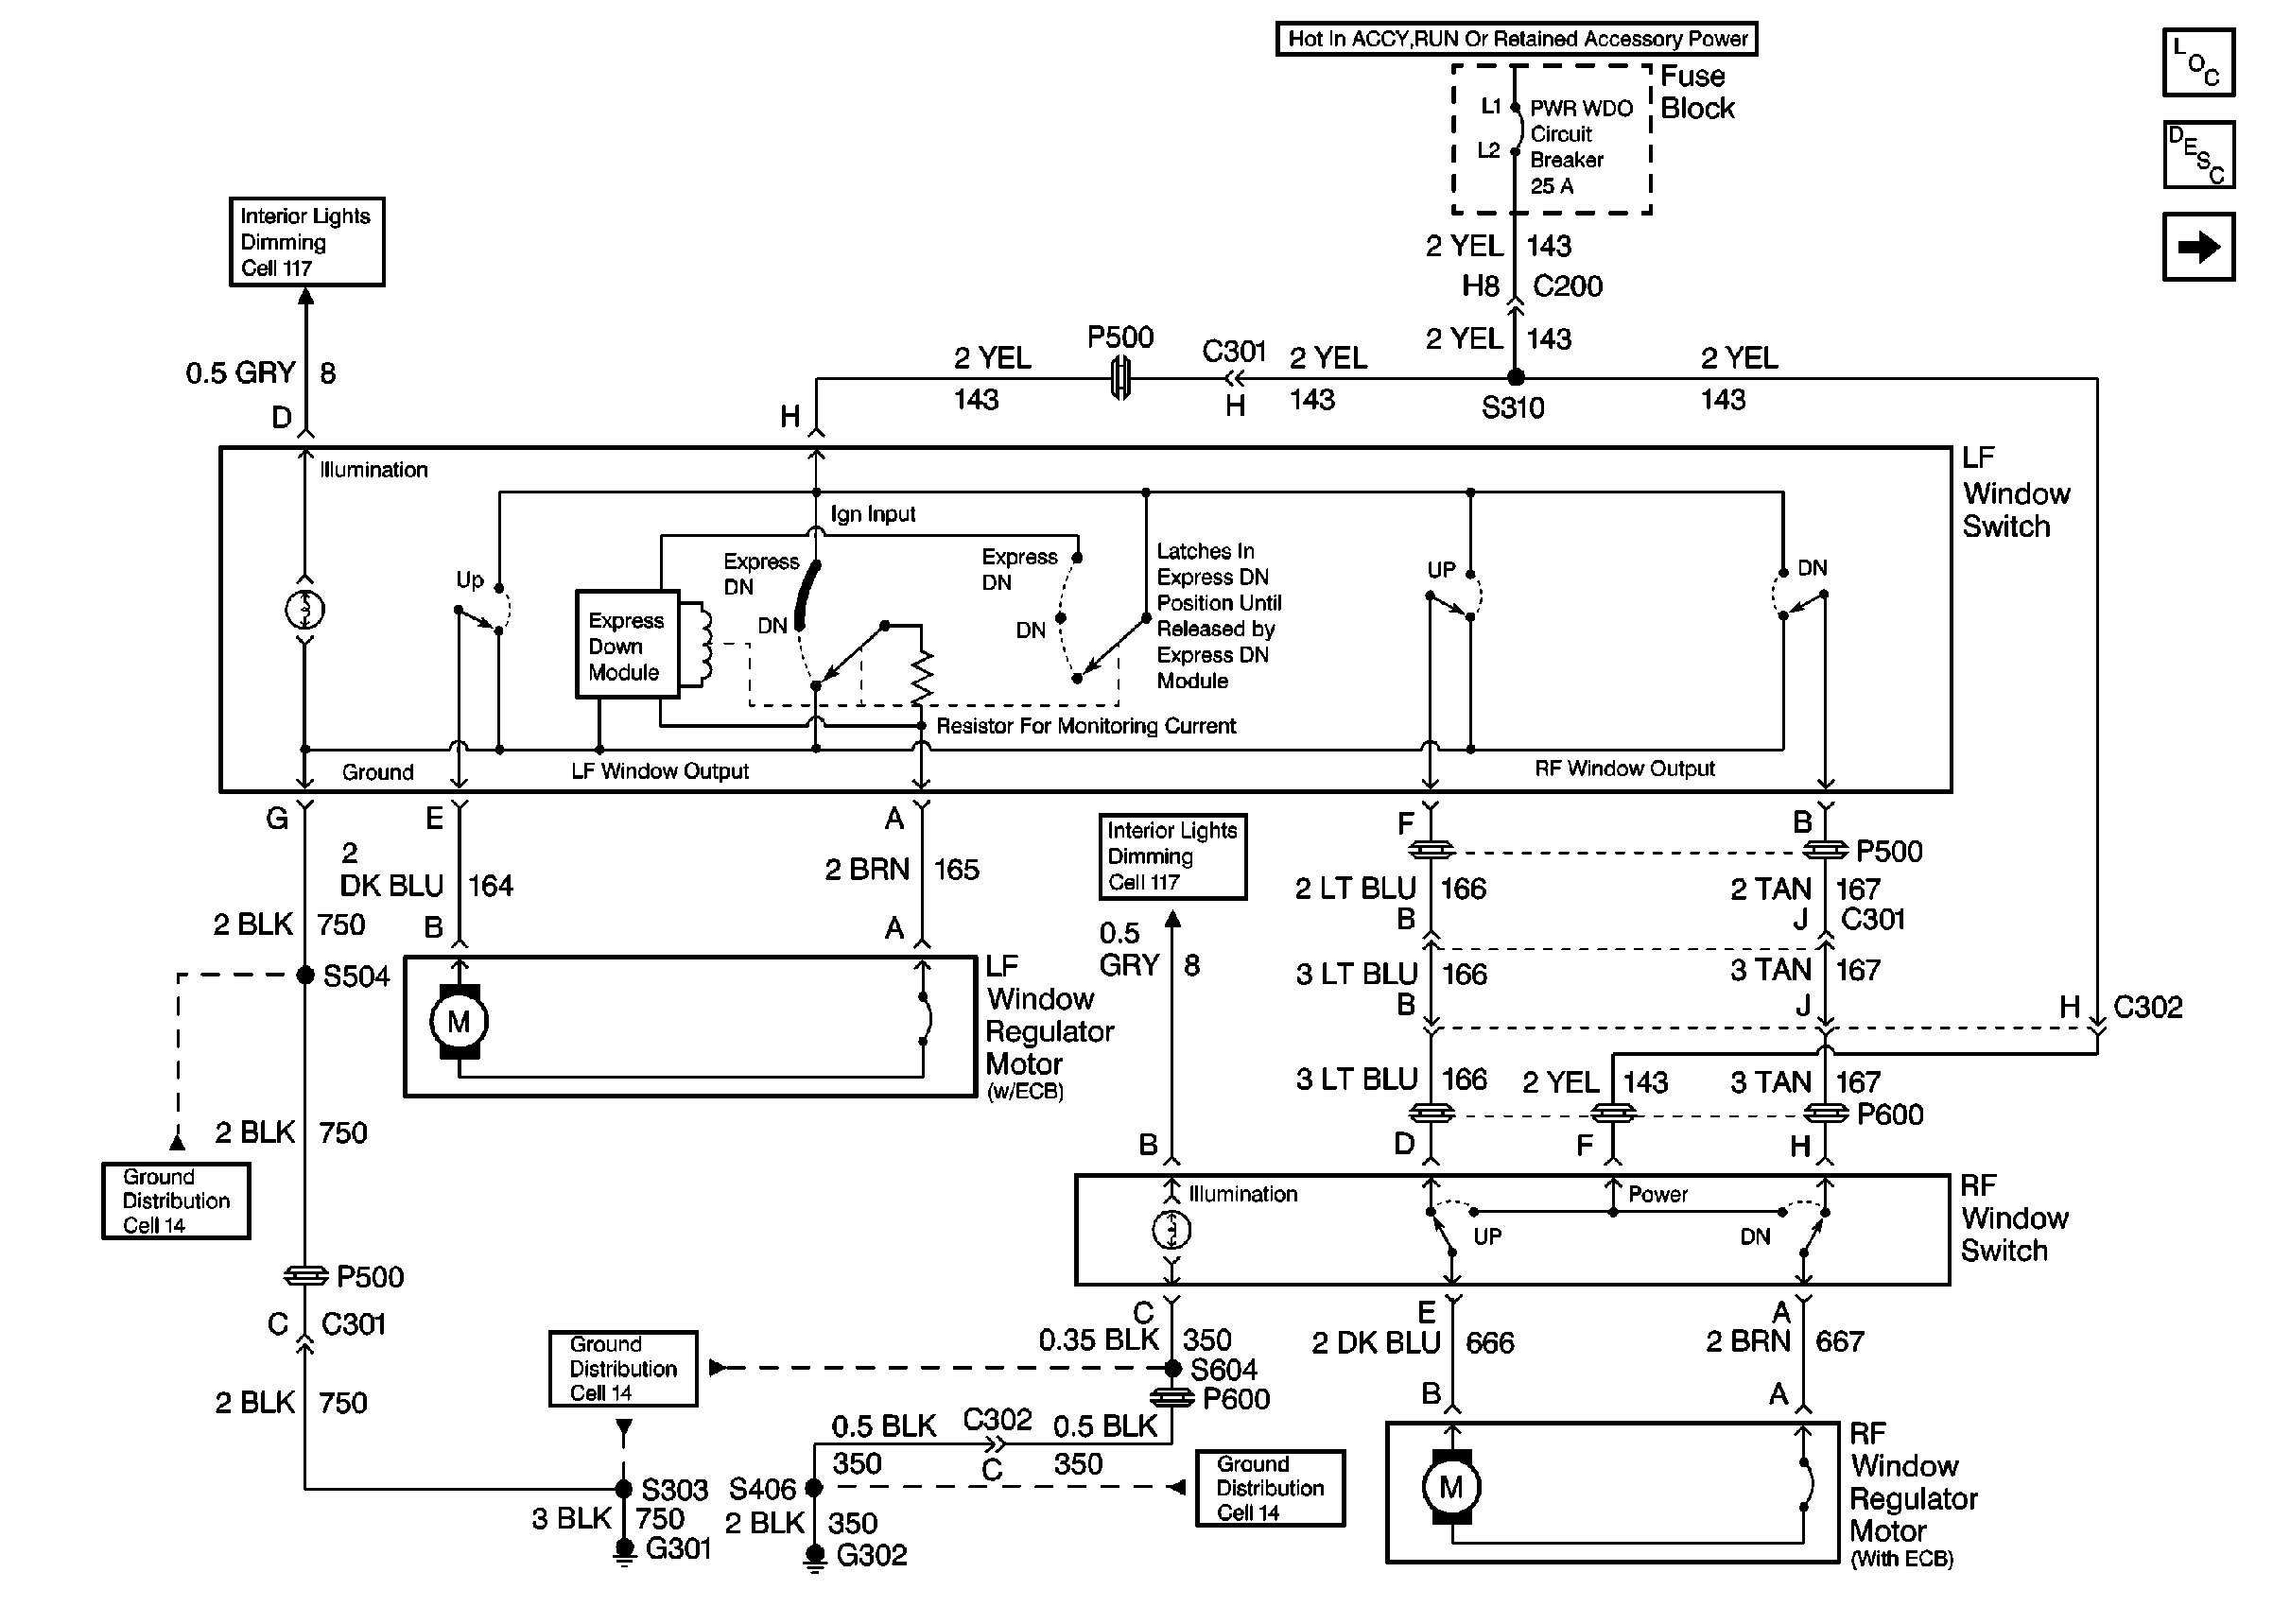 pontiac bonneville radio wiring diagram 1997 pontiac grand am starter wiring diagram | wiring library 2002 pontiac bonneville window wiring diagram